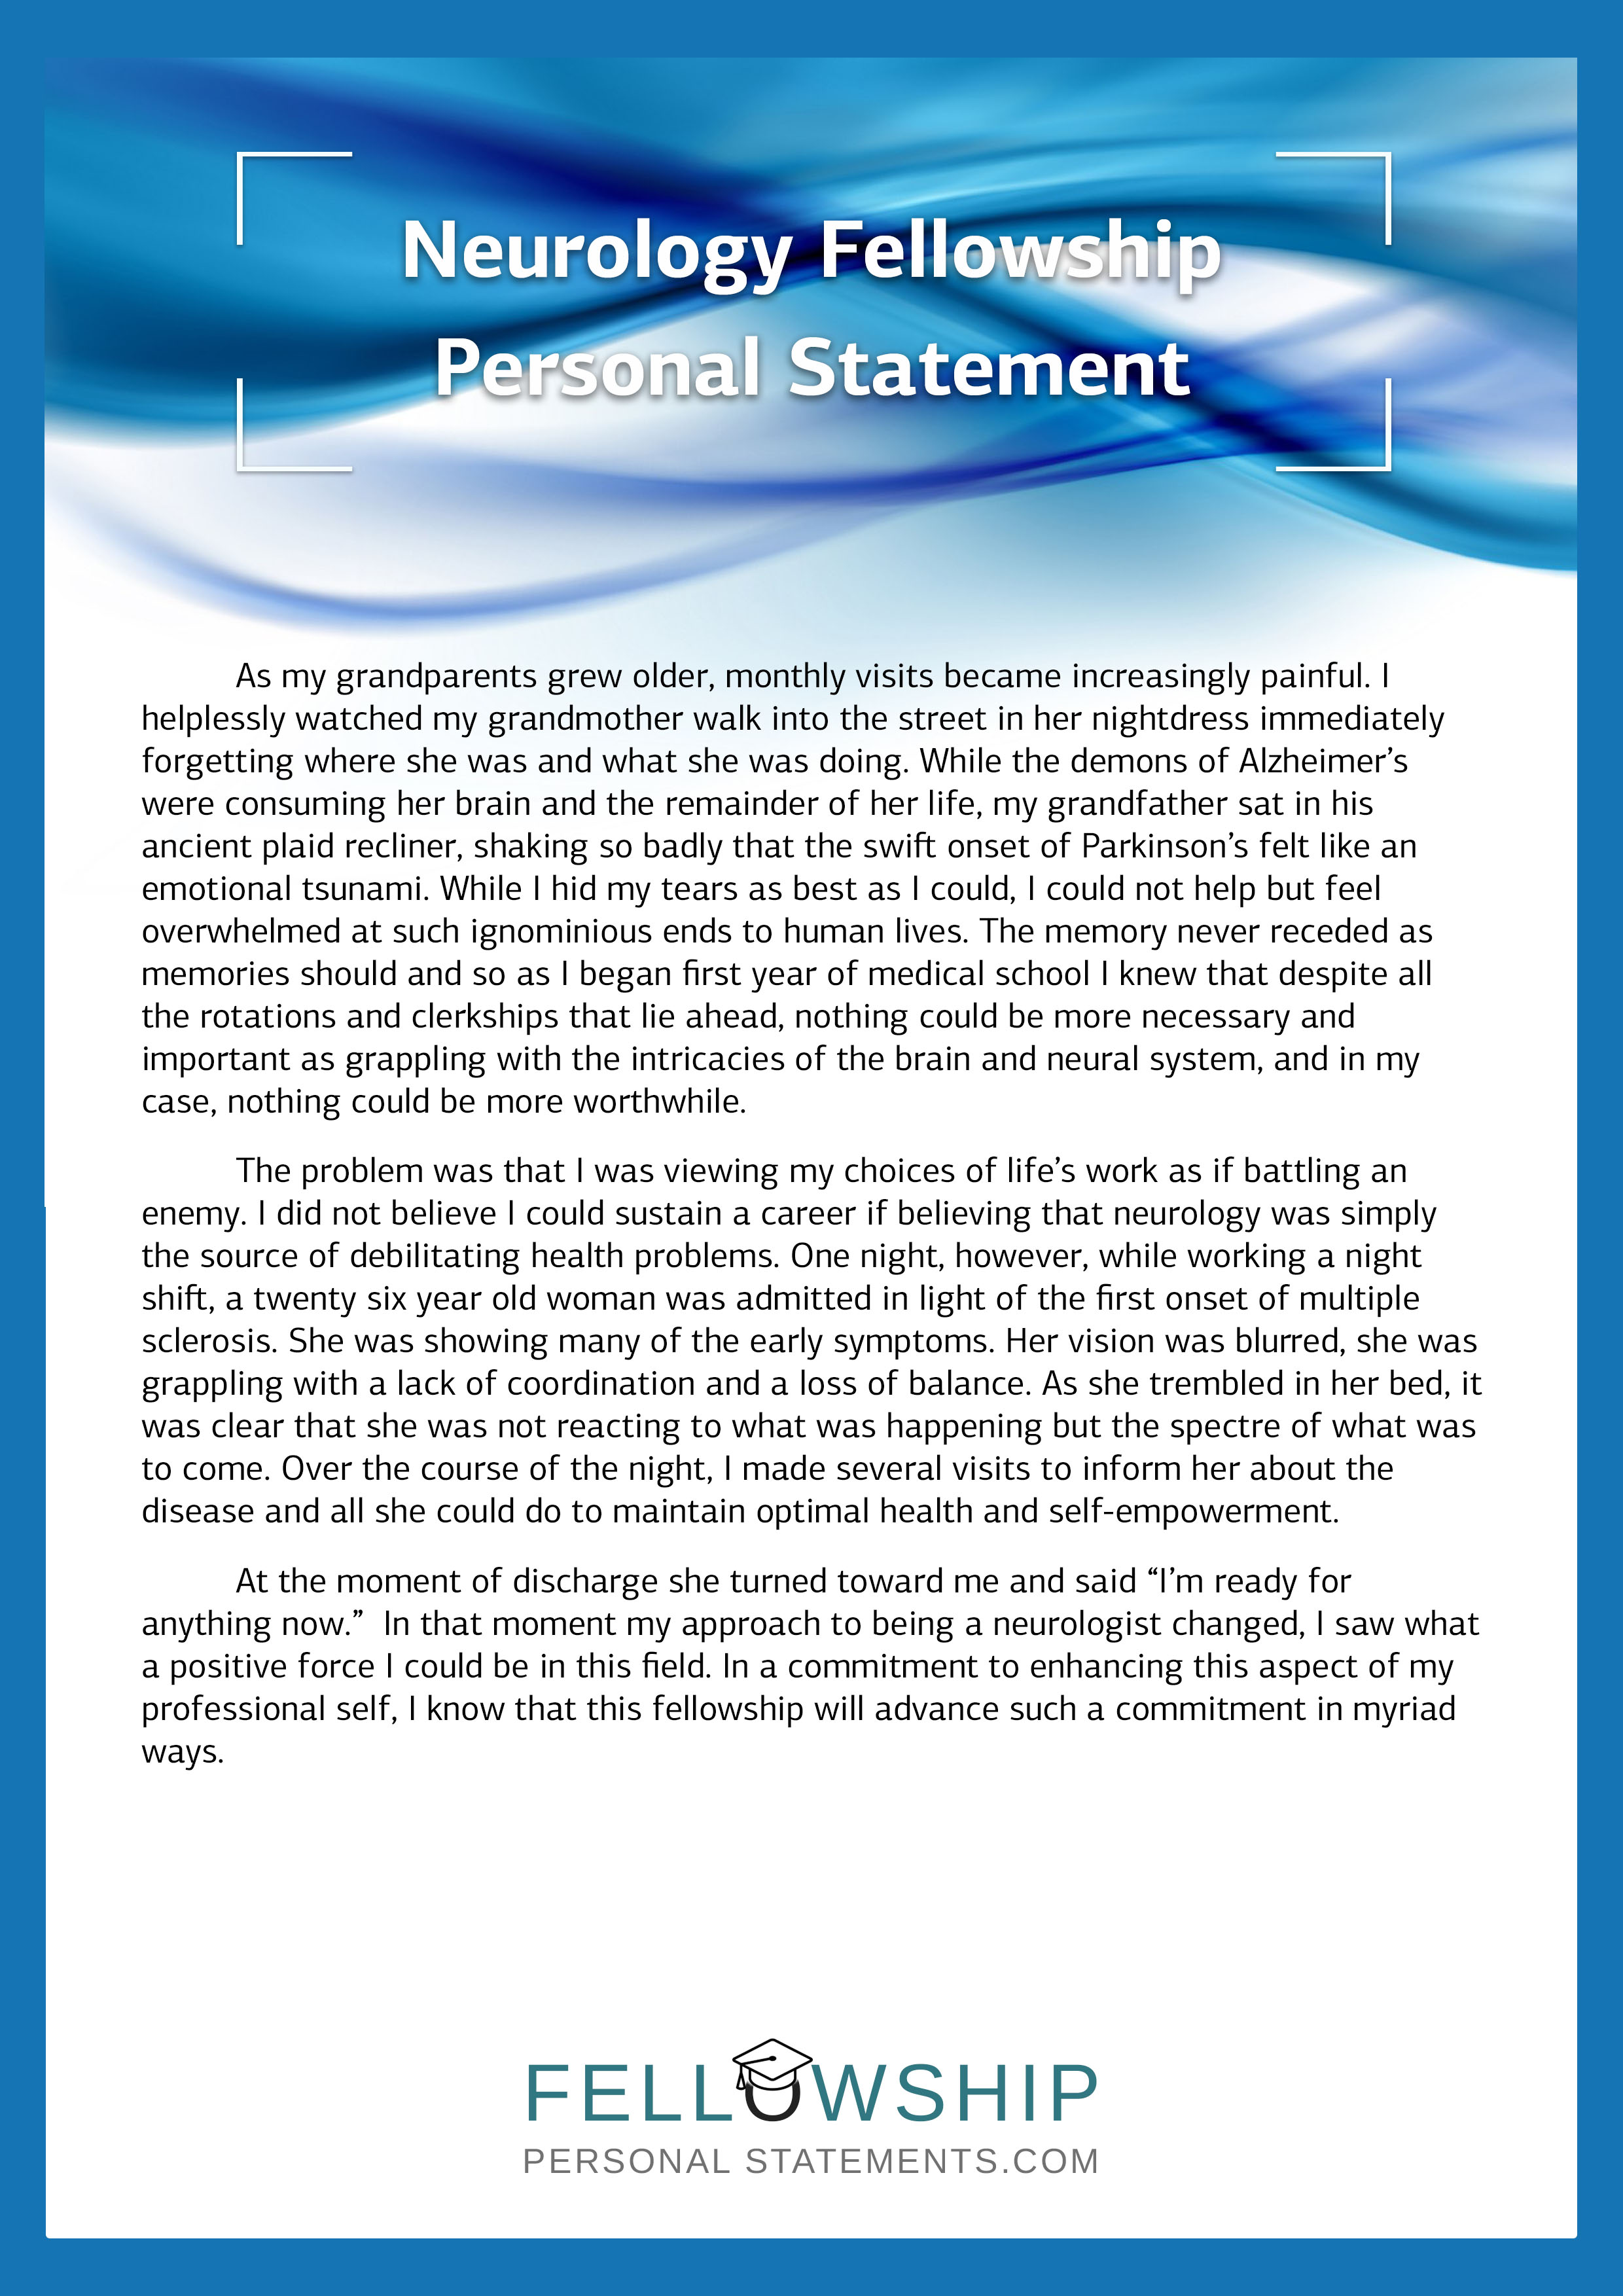 Personal statement for fellowship